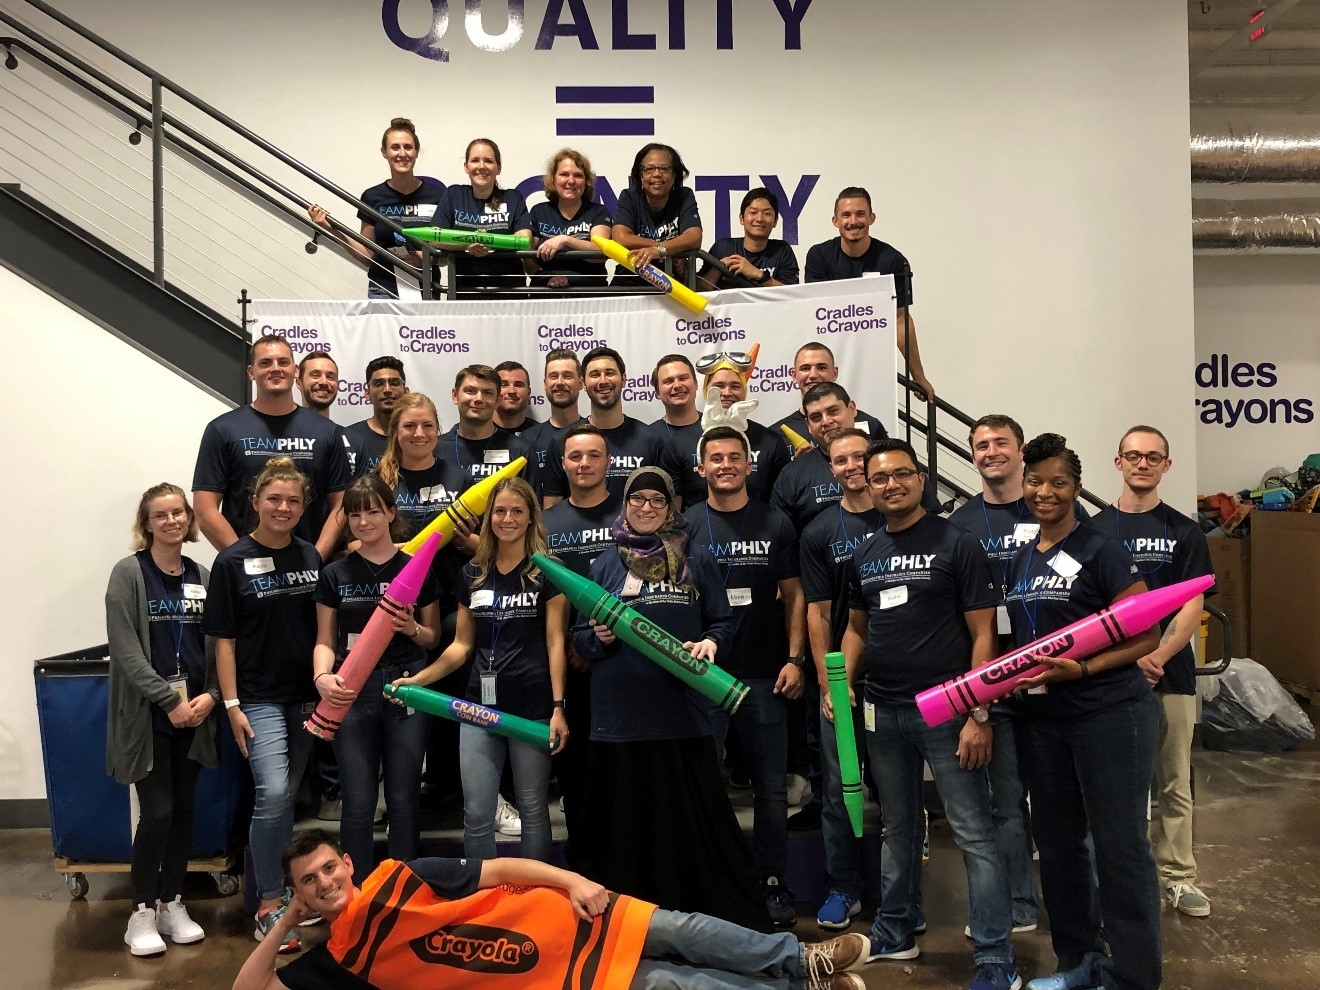 The PHLY Foundations program, designed to acclimate employees to PHLY, volunteered with Cradles to Crayons a non-profit organization that provides resources such as school supplies and clothing to homeless and low-income children.